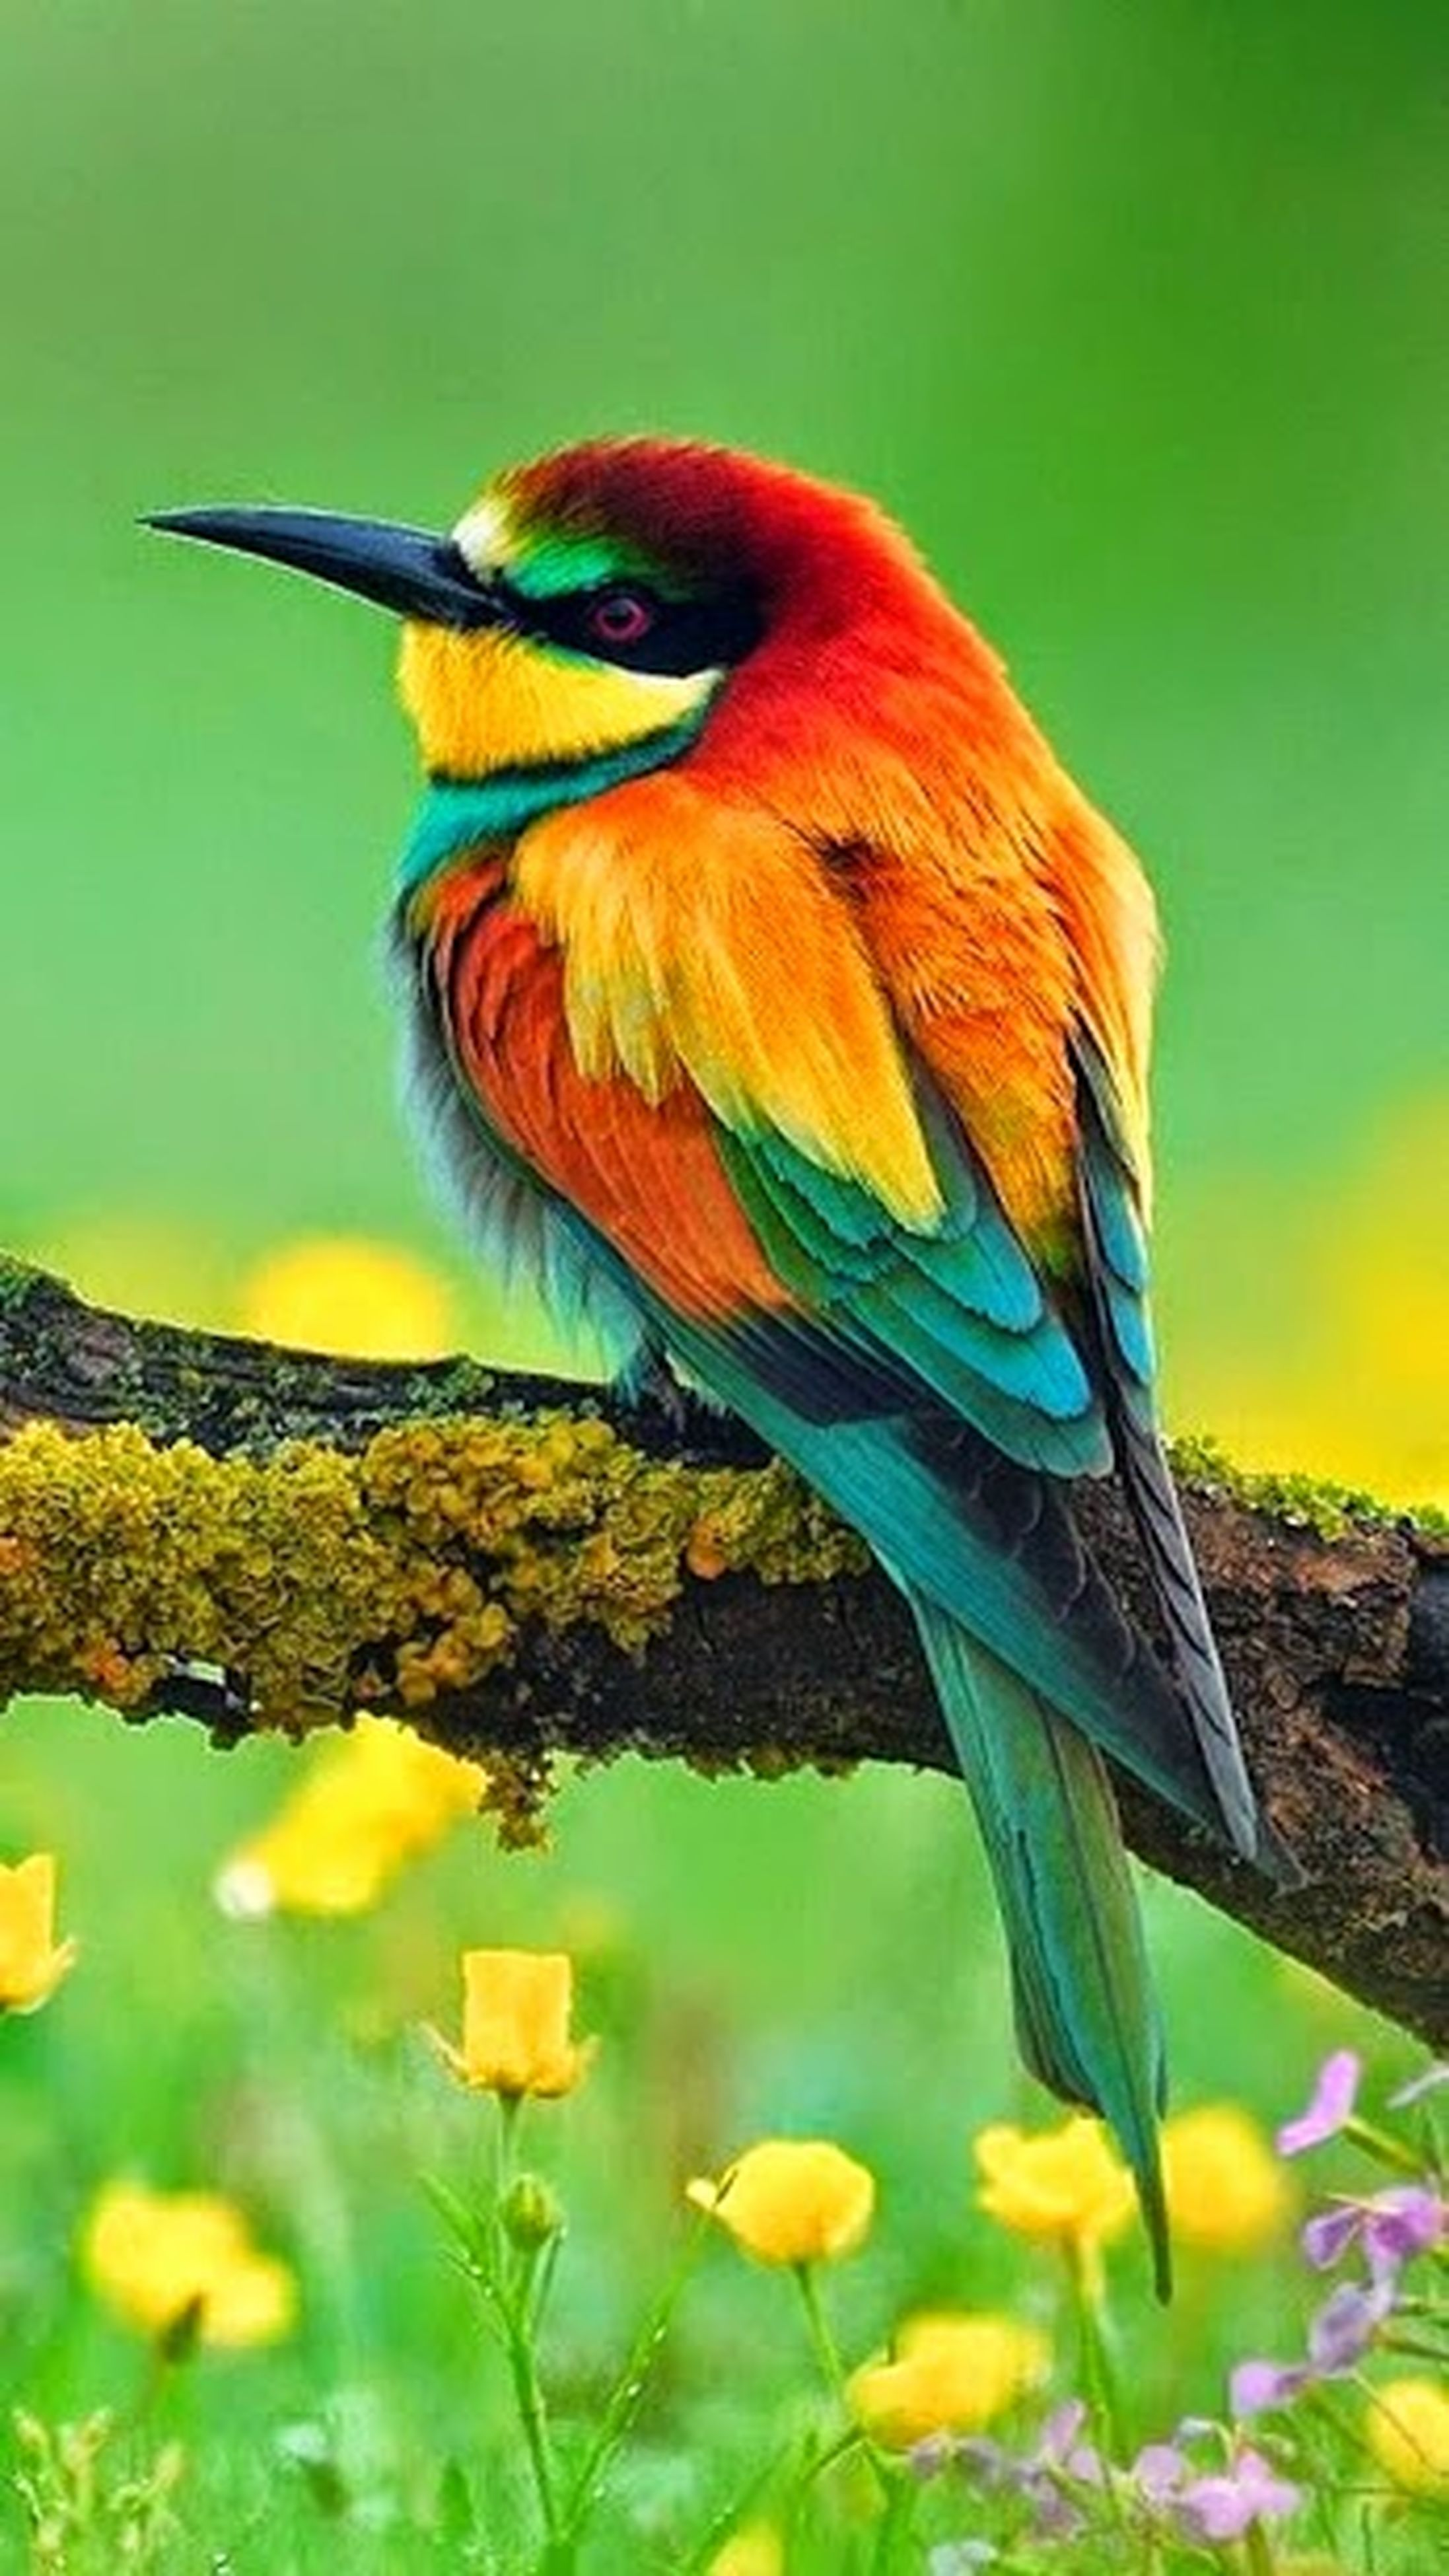 bird, animal themes, one animal, animals in the wild, wildlife, focus on foreground, perching, nature, close-up, beak, beauty in nature, orange color, yellow, no people, day, outdoors, branch, full length, multi colored, zoology